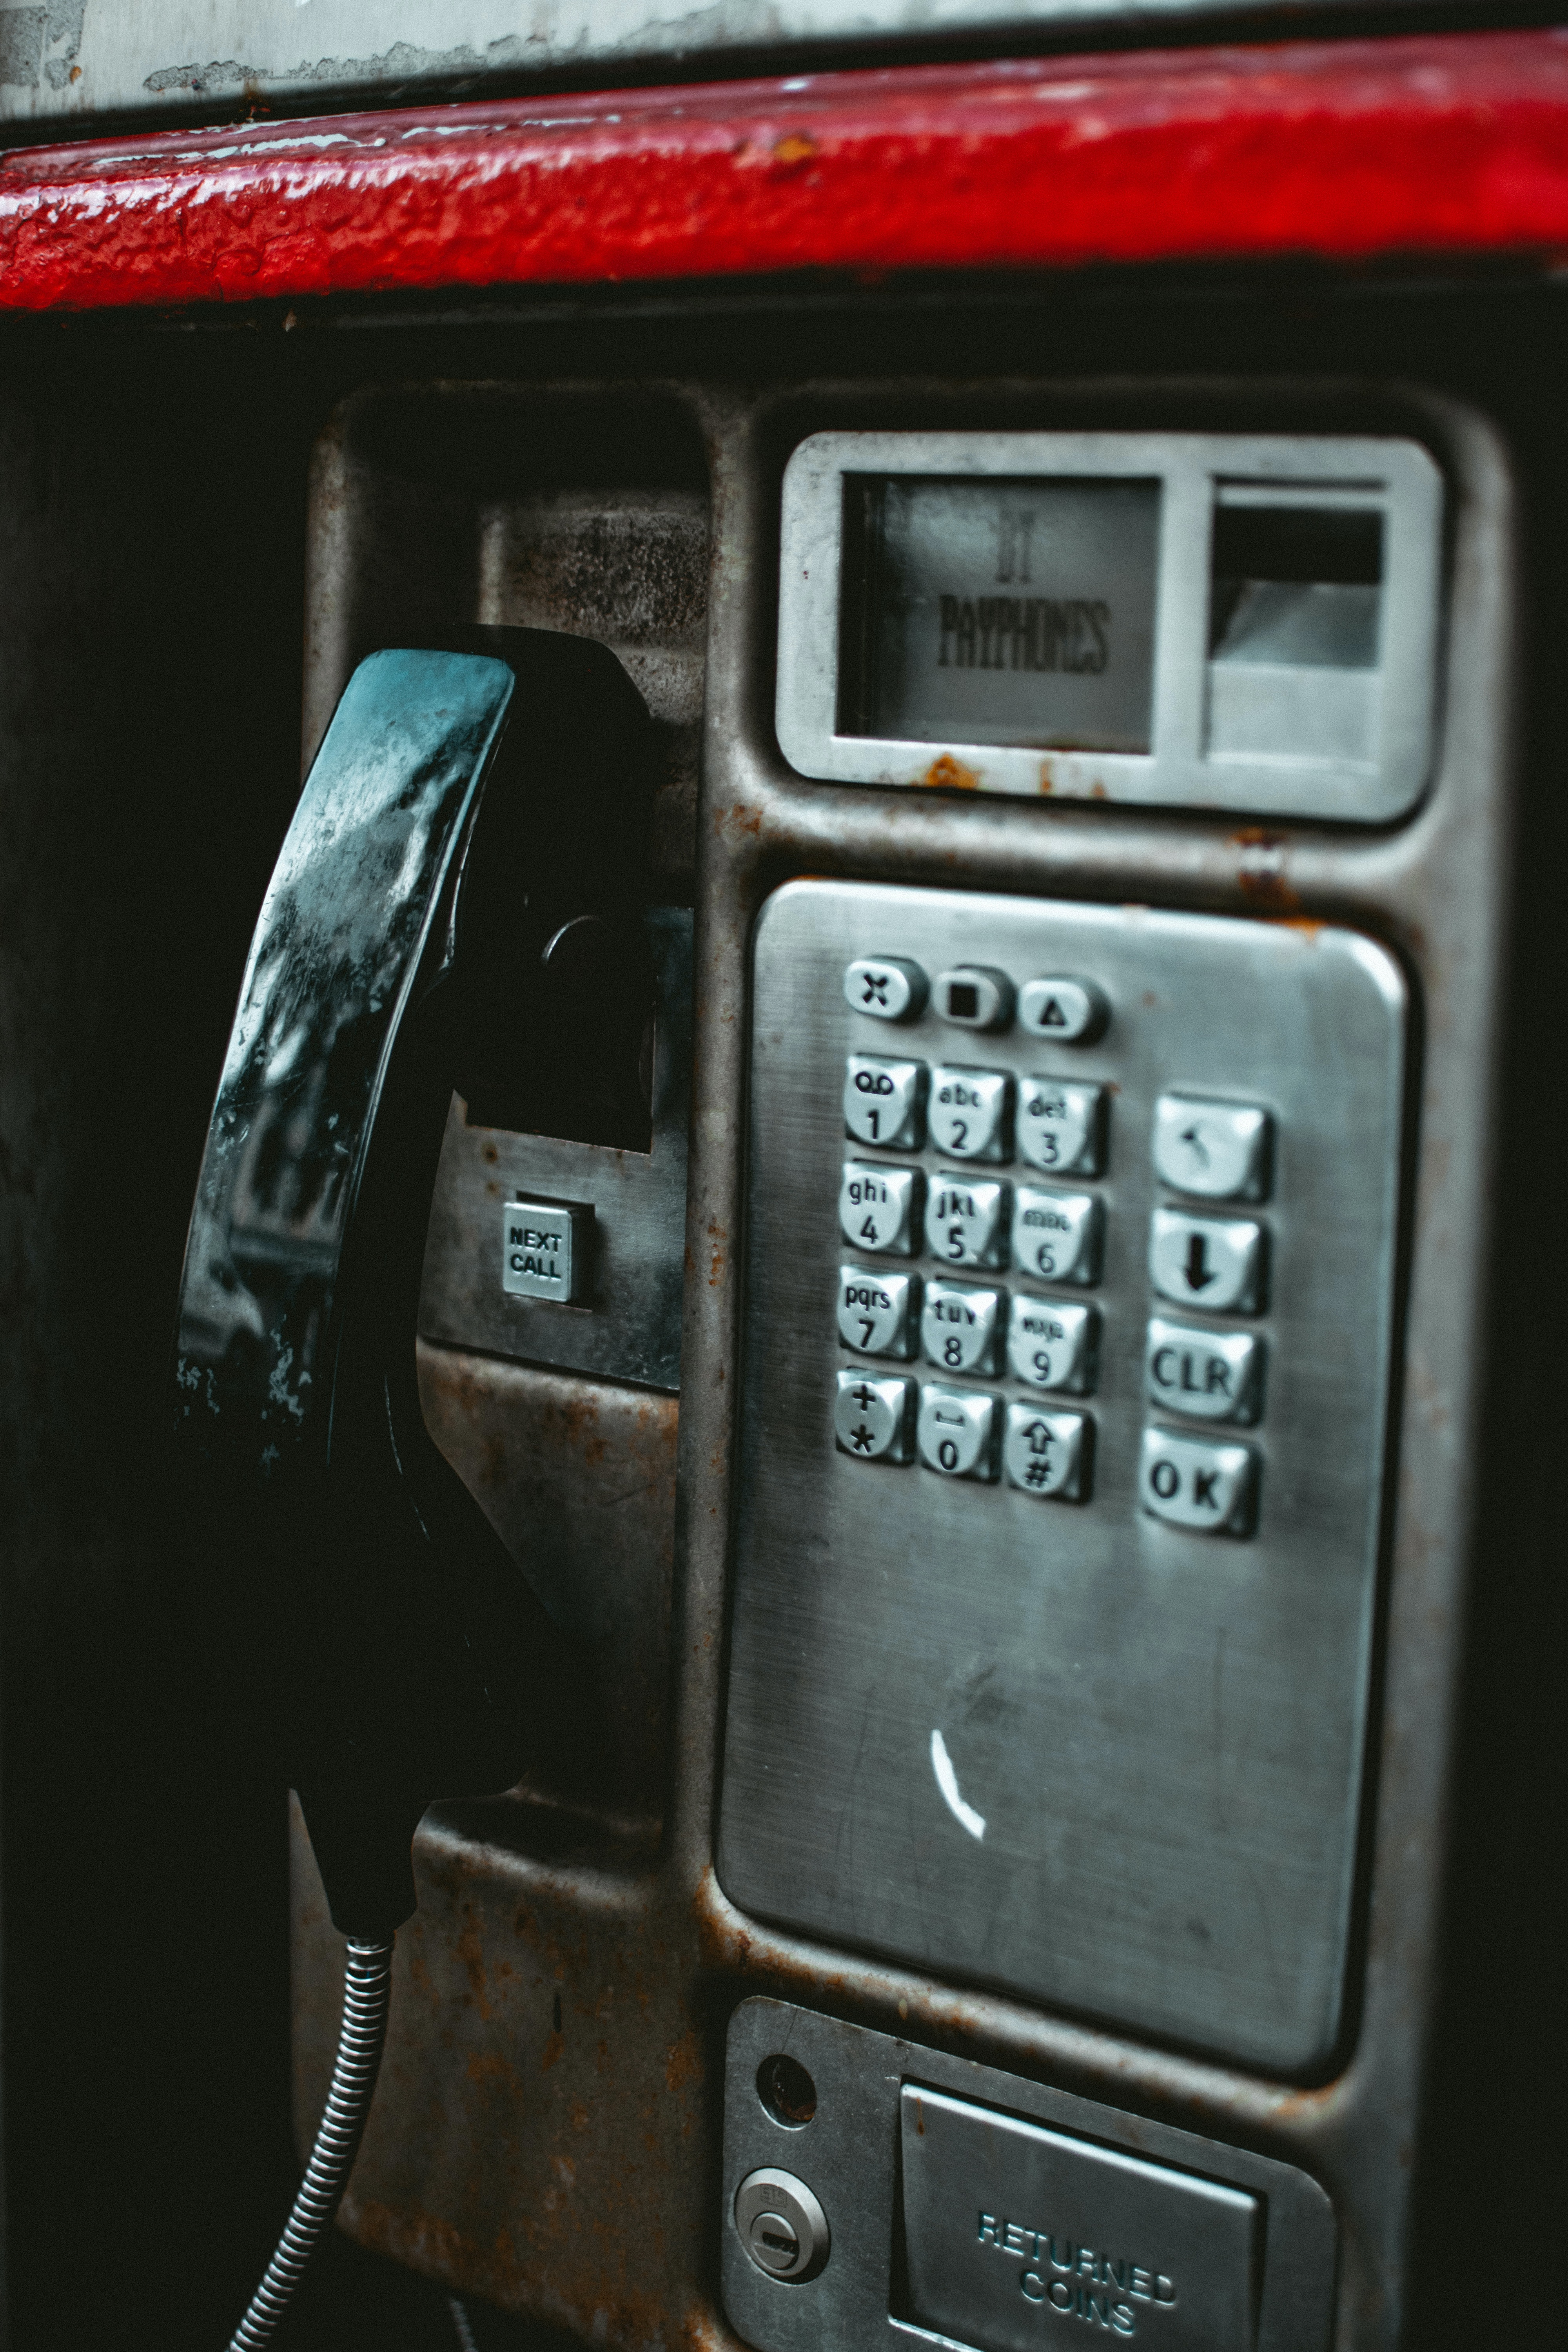 Close-Up Photo of Payphone · Free Stock Photo